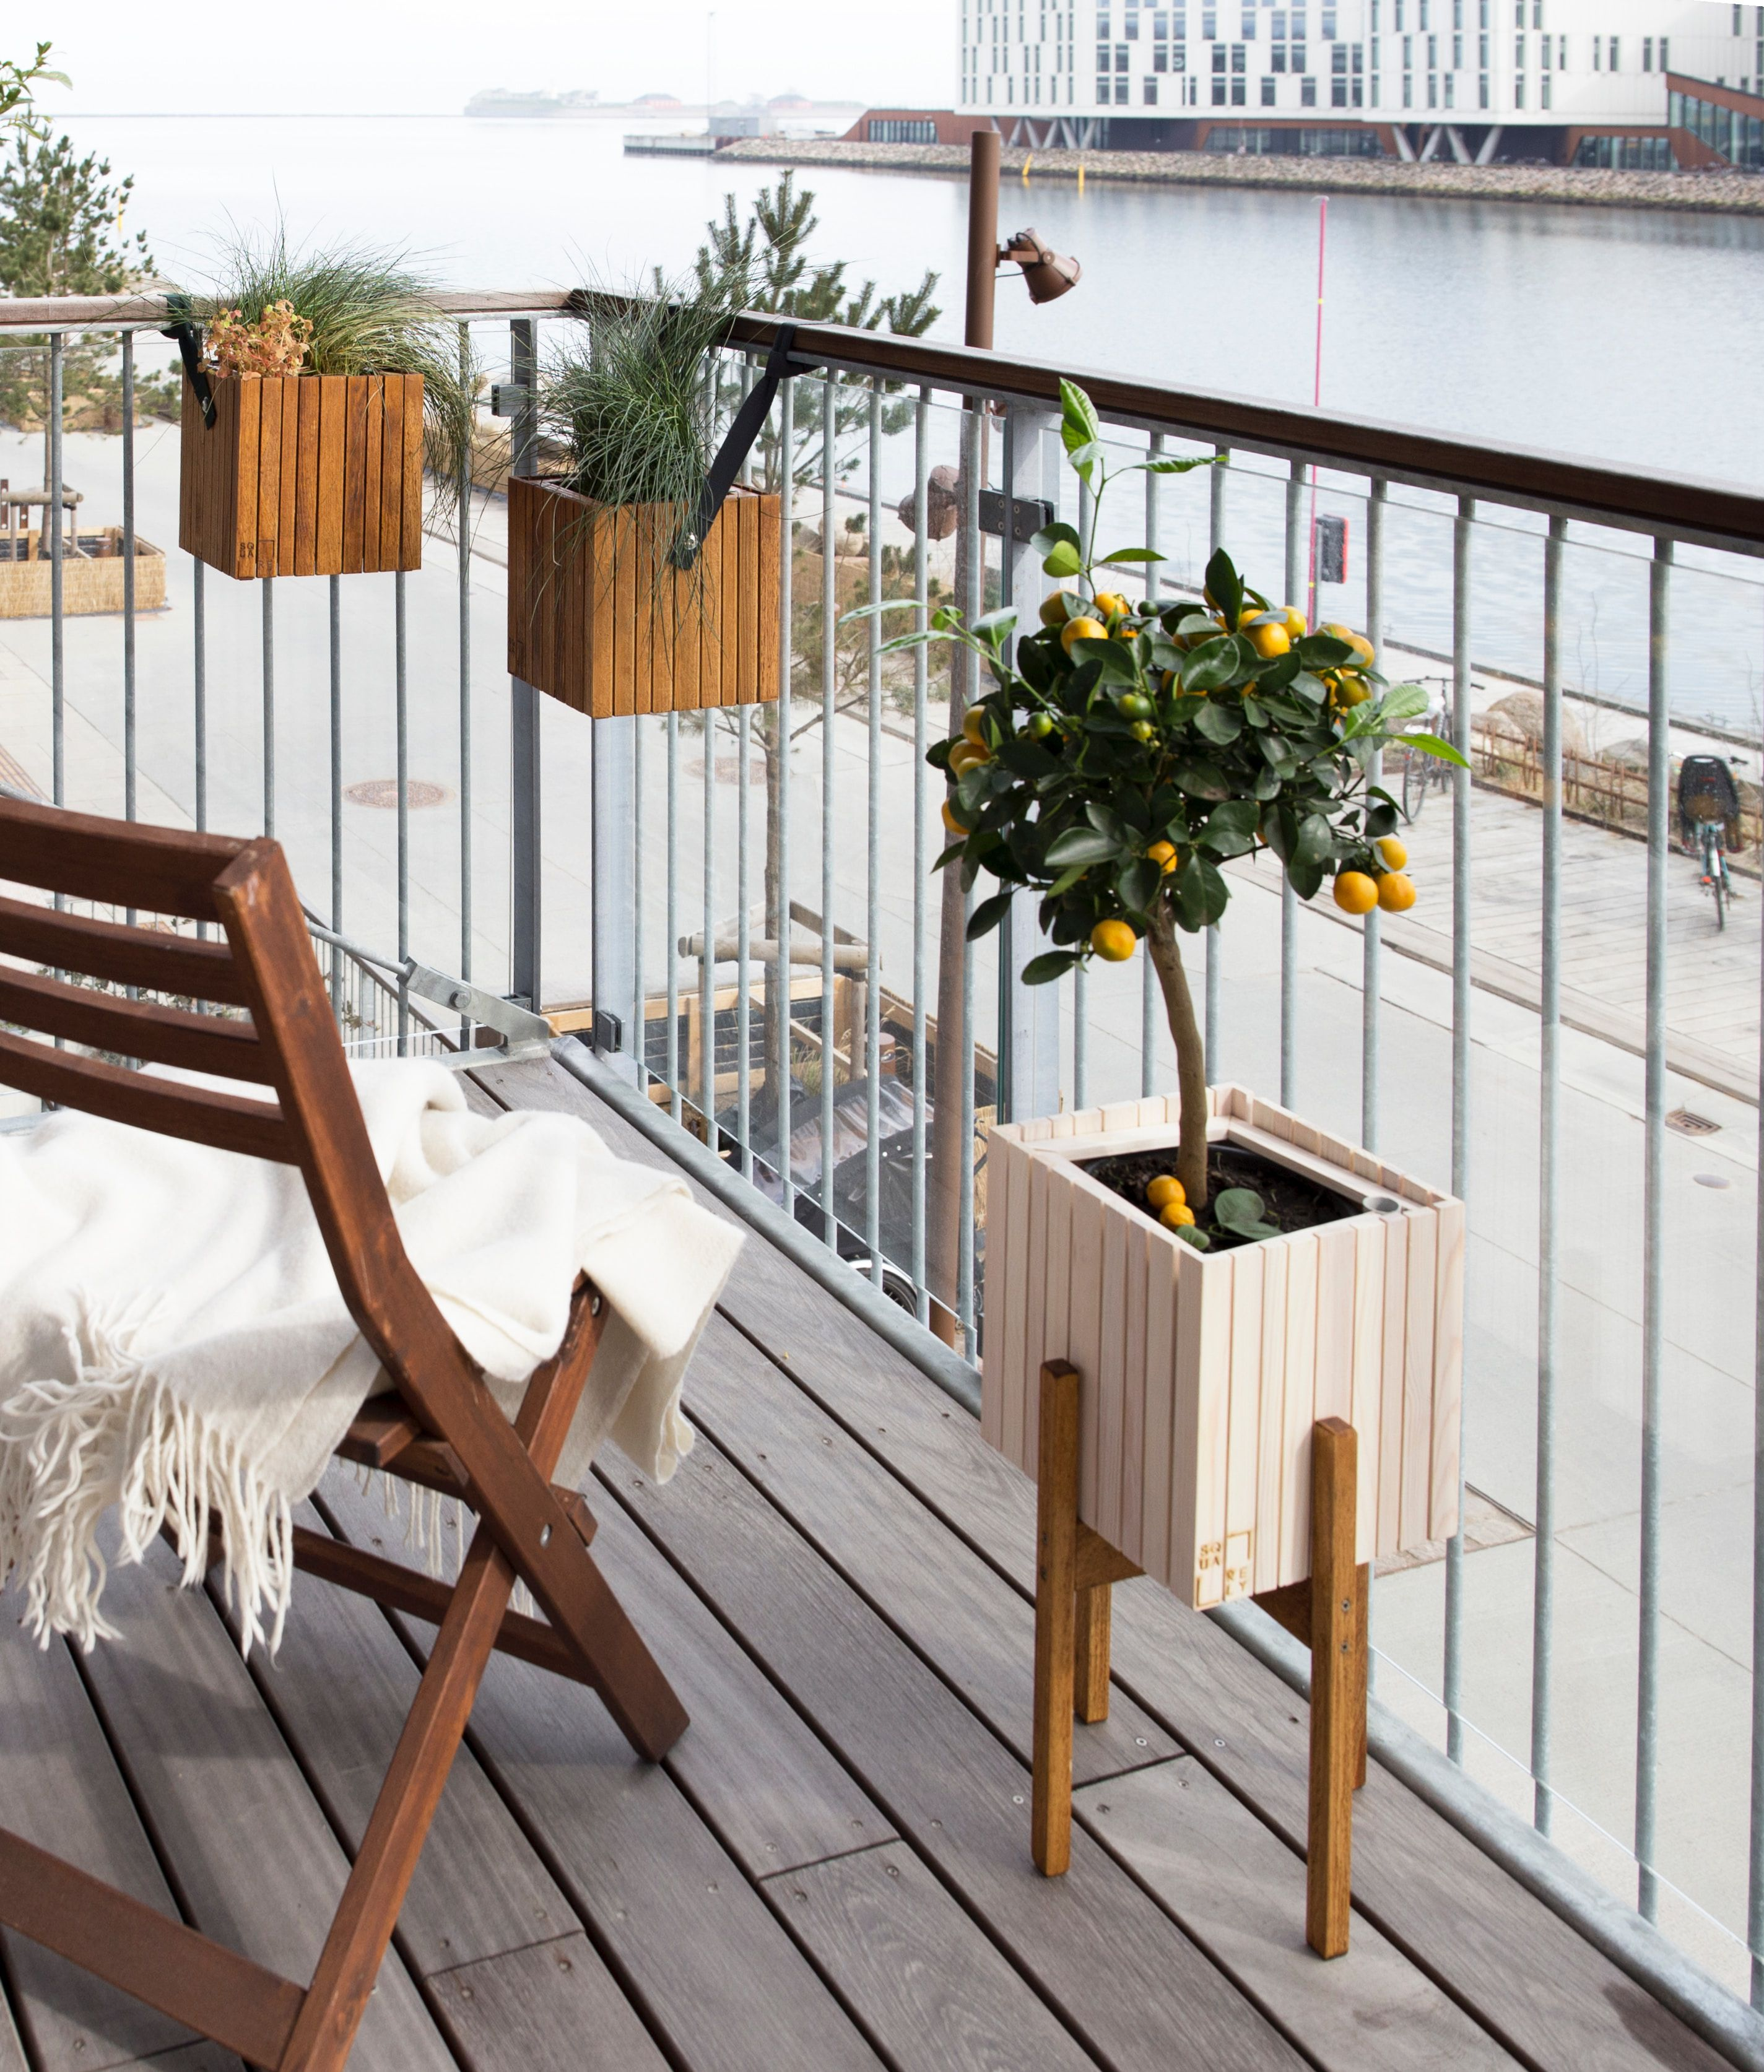 29 Ways to Maximize Your Small Balcony Space